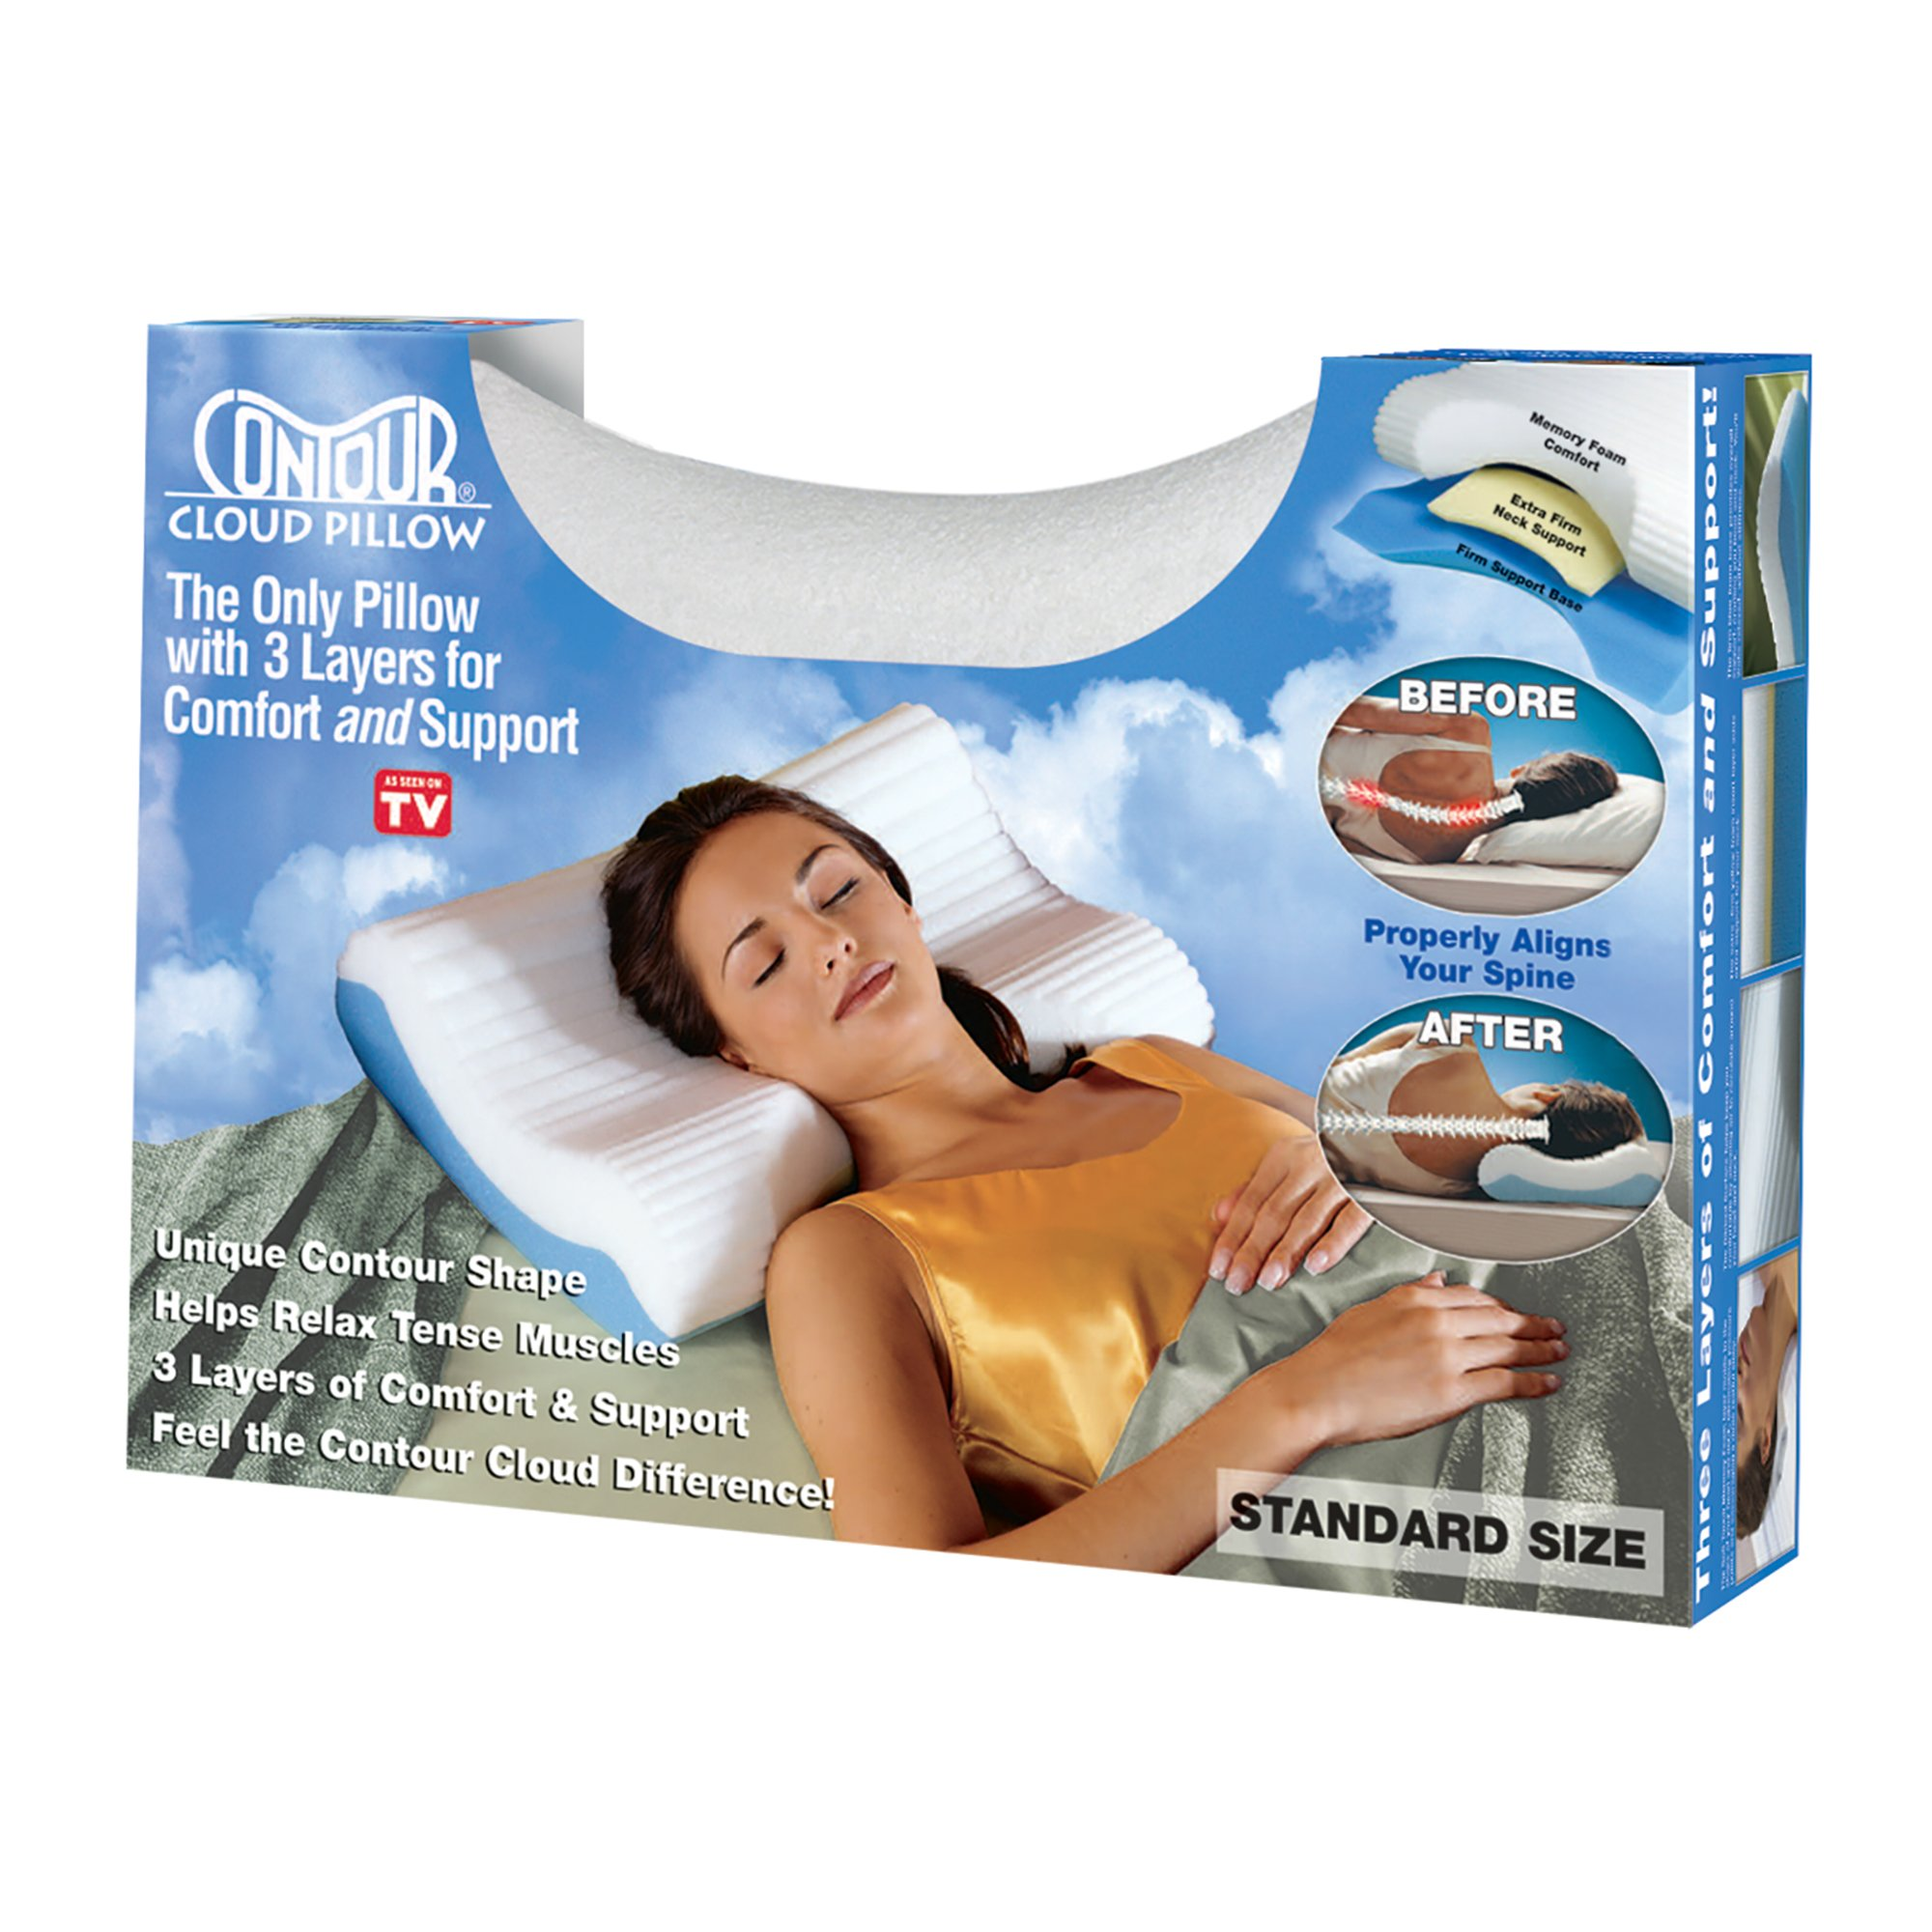 Contour_CloudPillow_Package